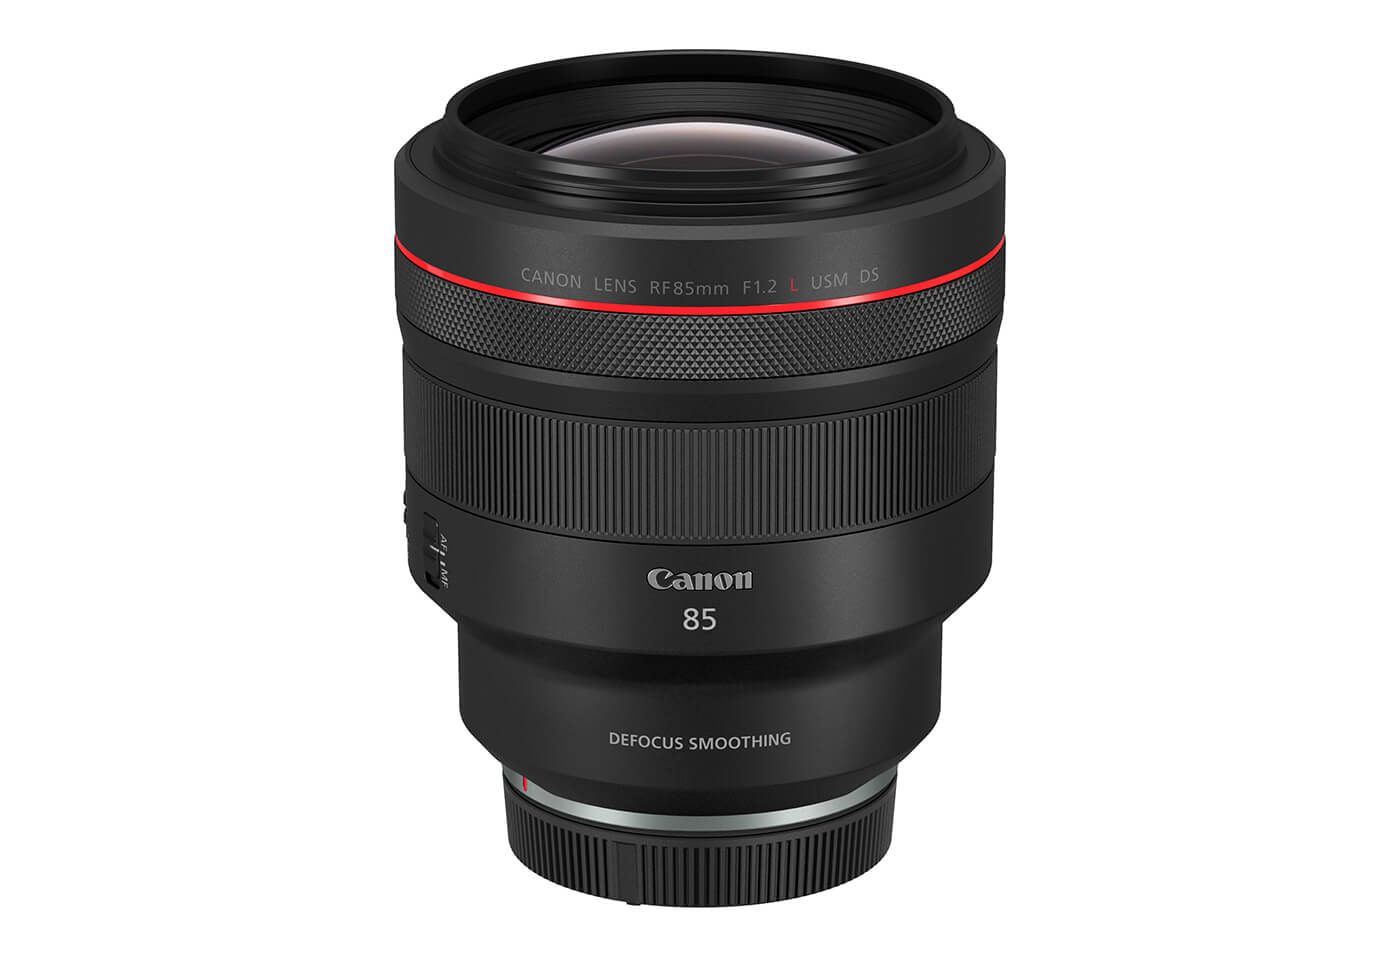 Front face tilt product image of Canon prime lens RF 85mm f/1.2L USM DS